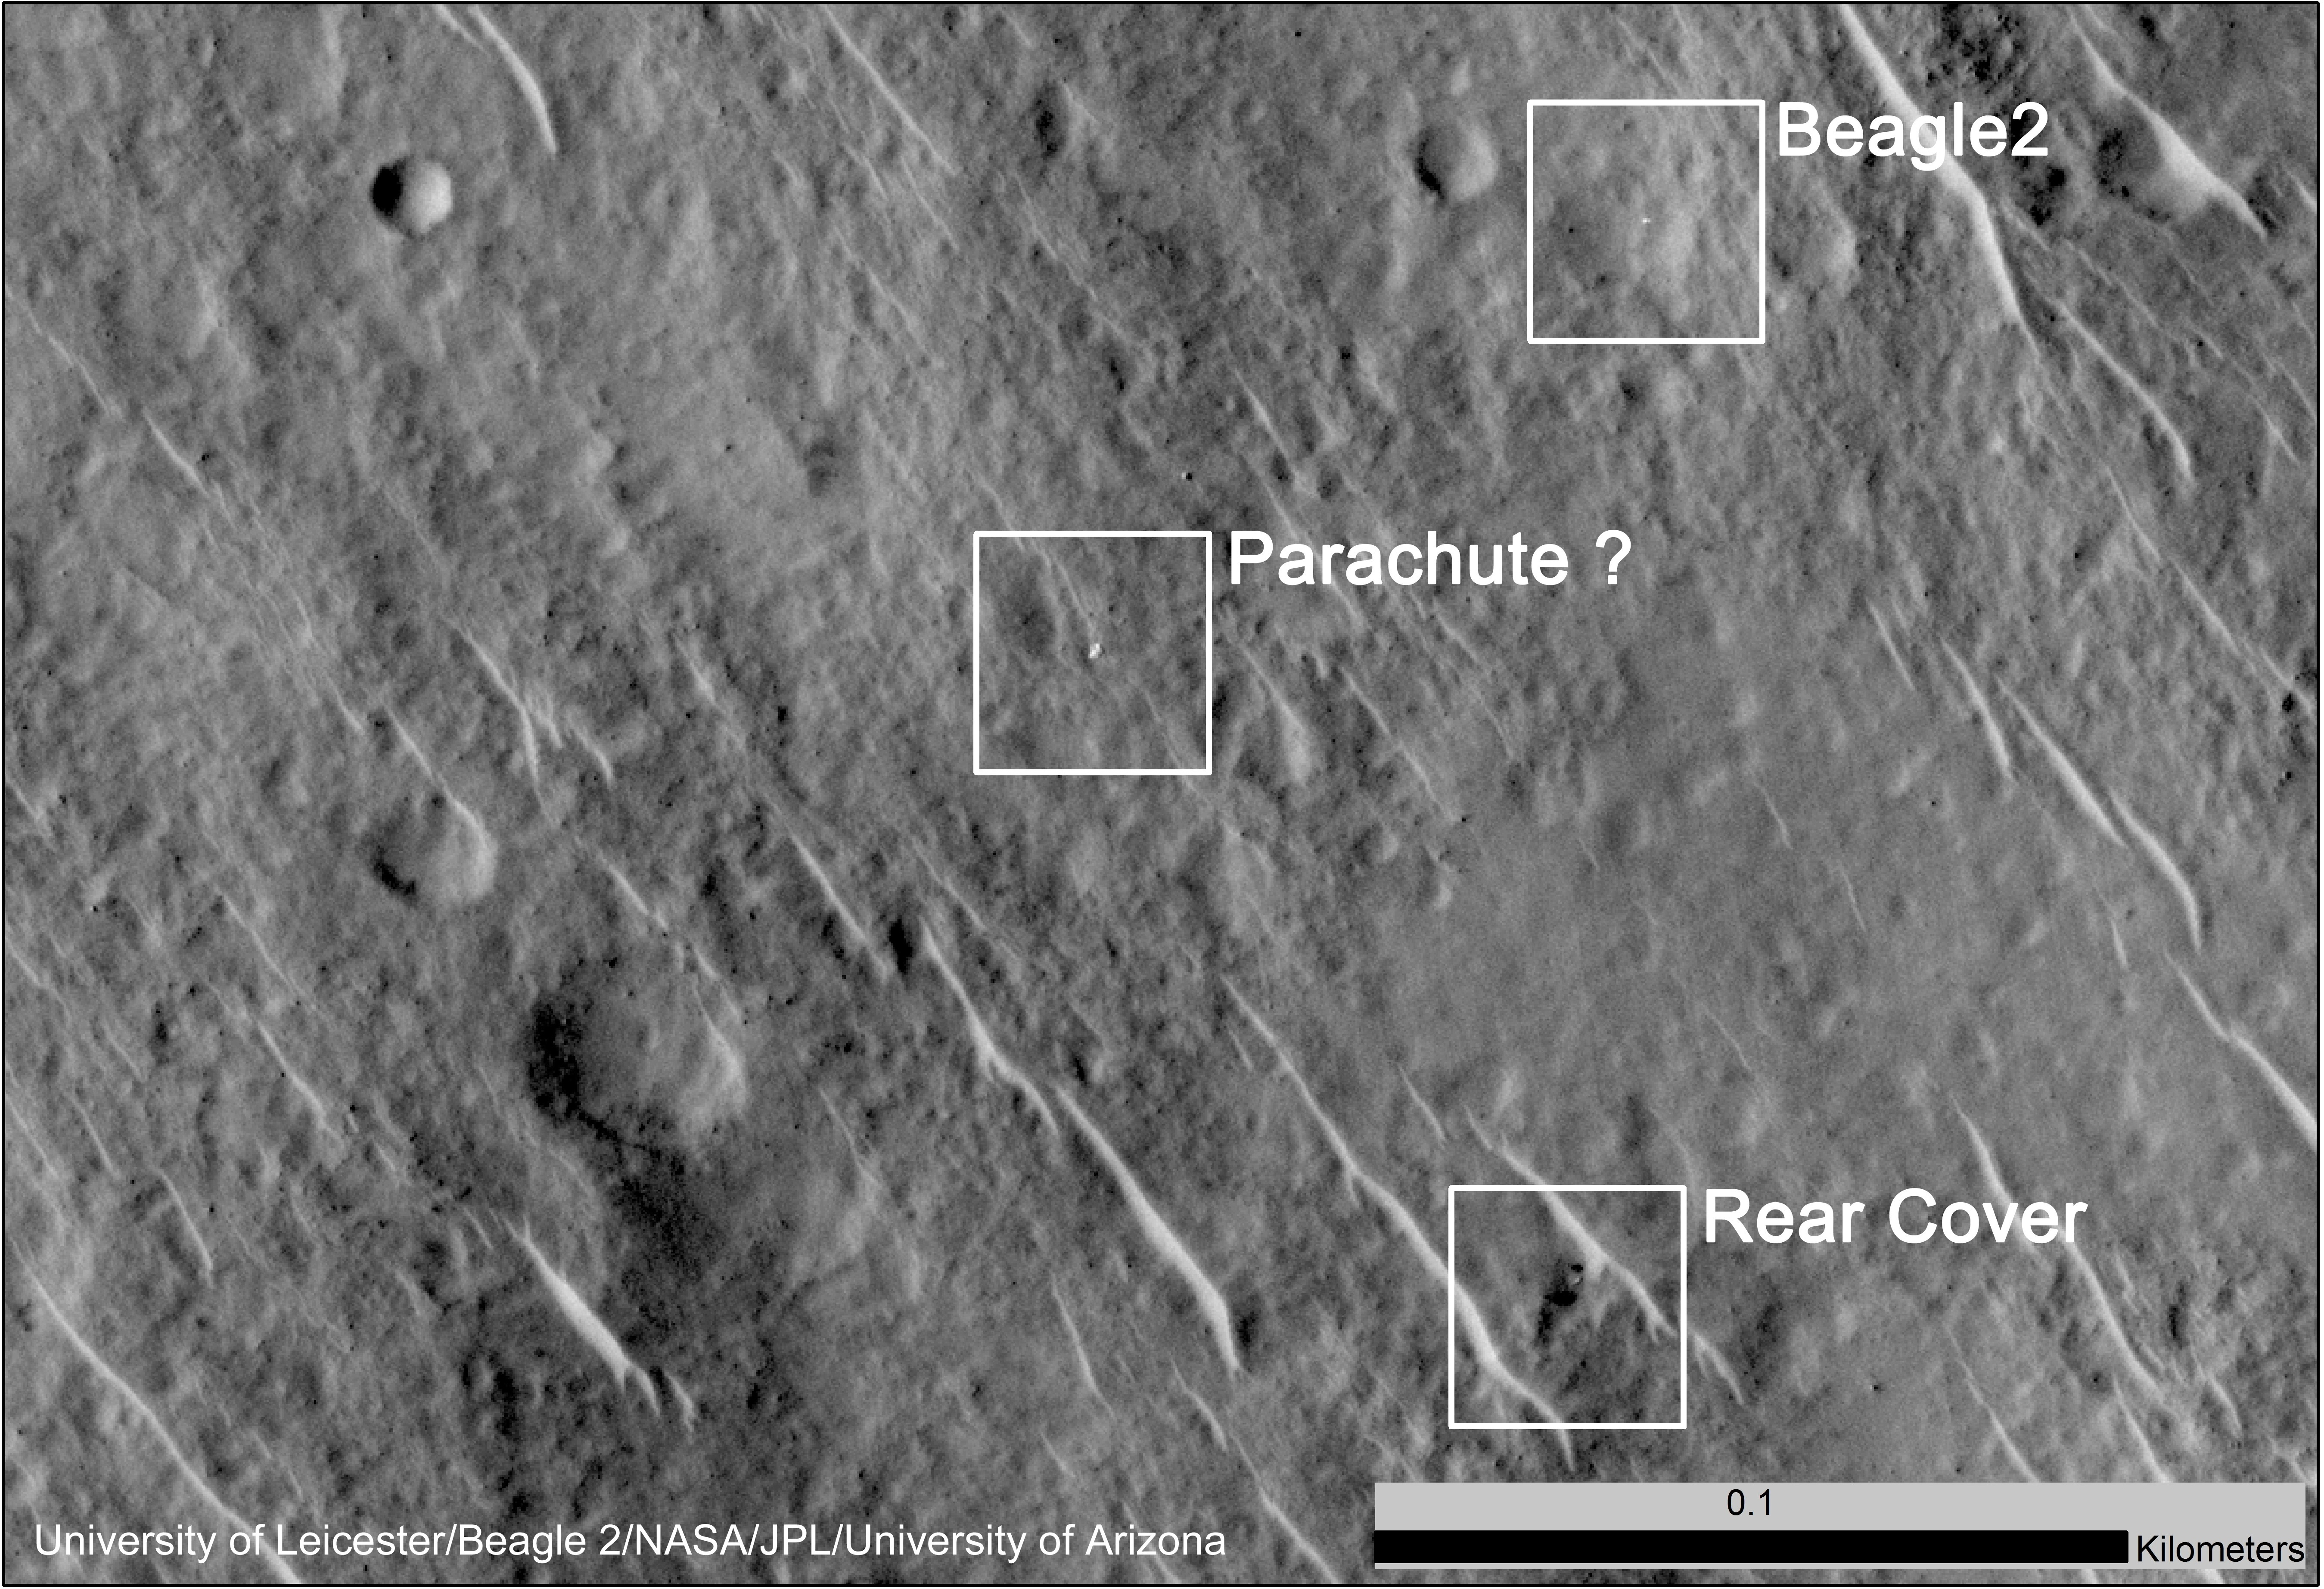 Long-Lost European Spacecraft Spotted On Mars By NASA Probe